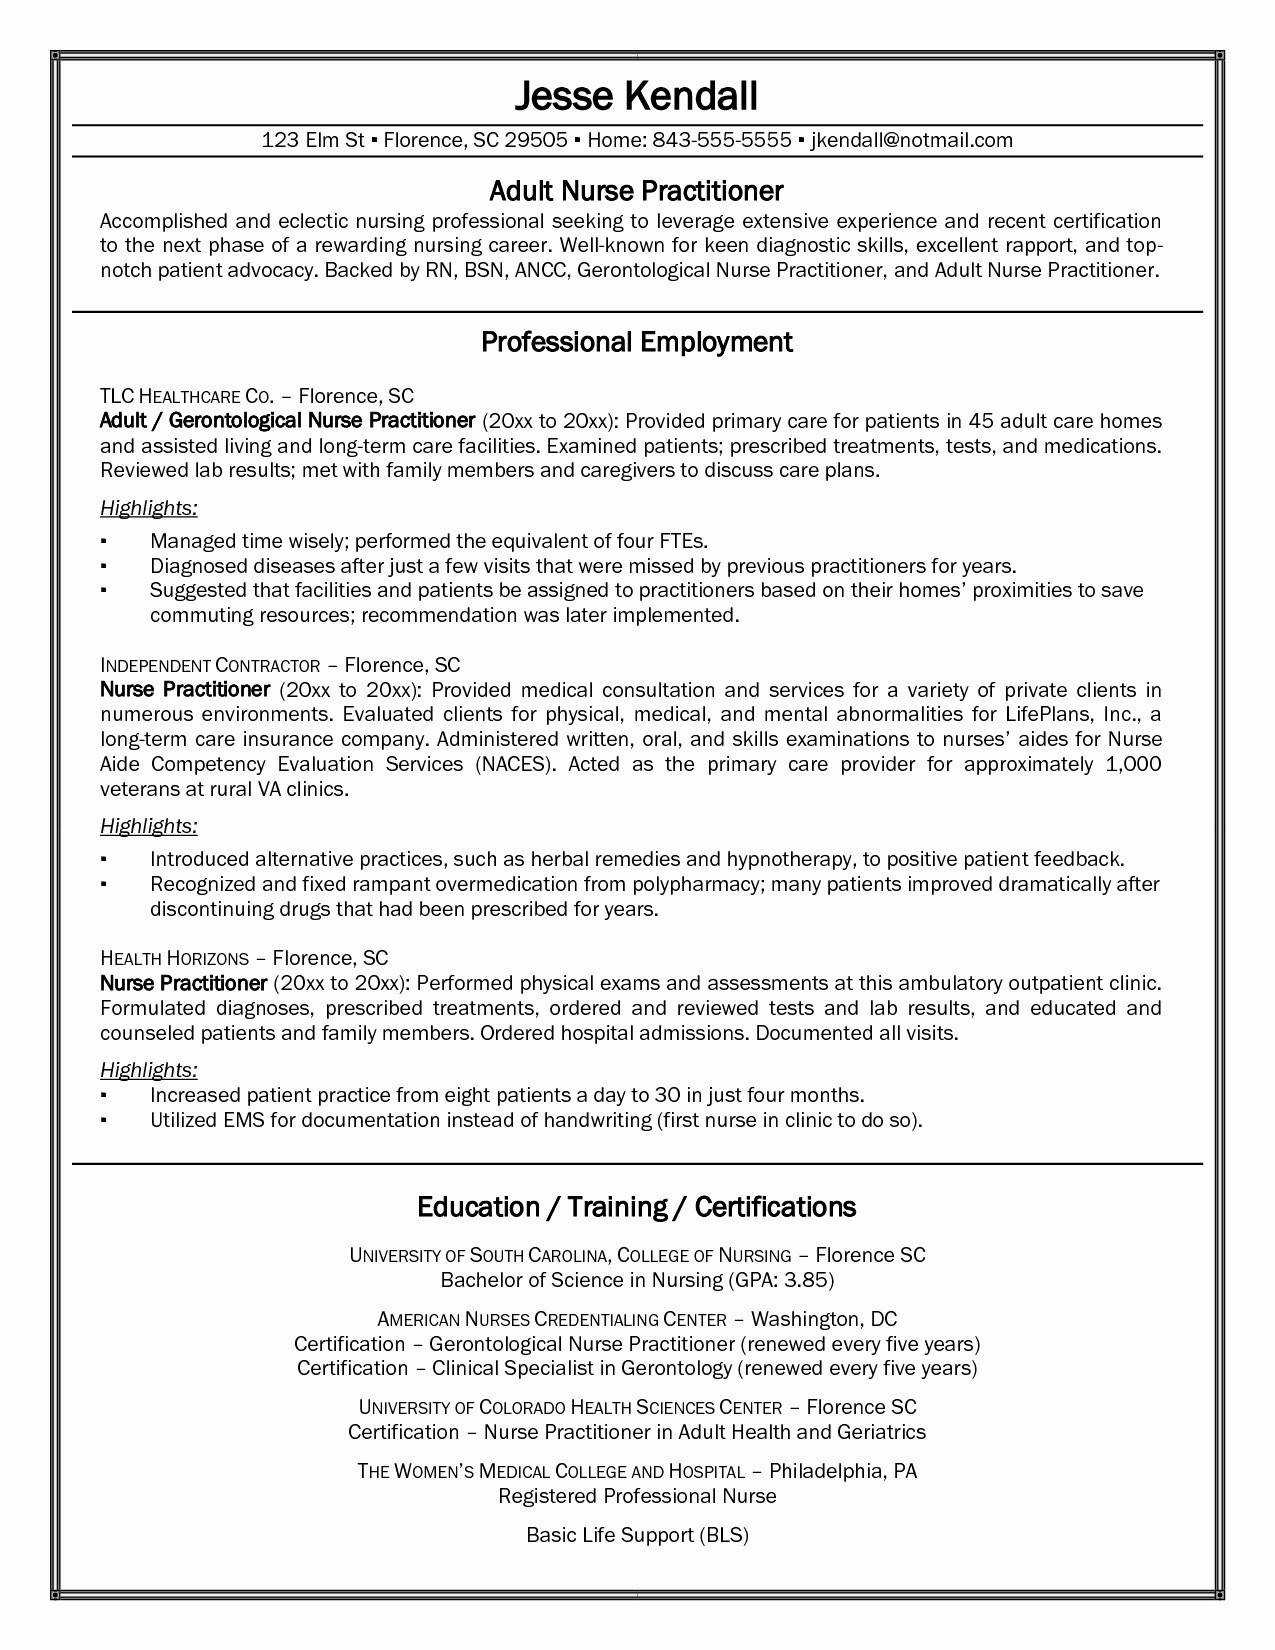 New Nurse Resume Results Based Resume Examples Awesome Wound Care Nurse Resume